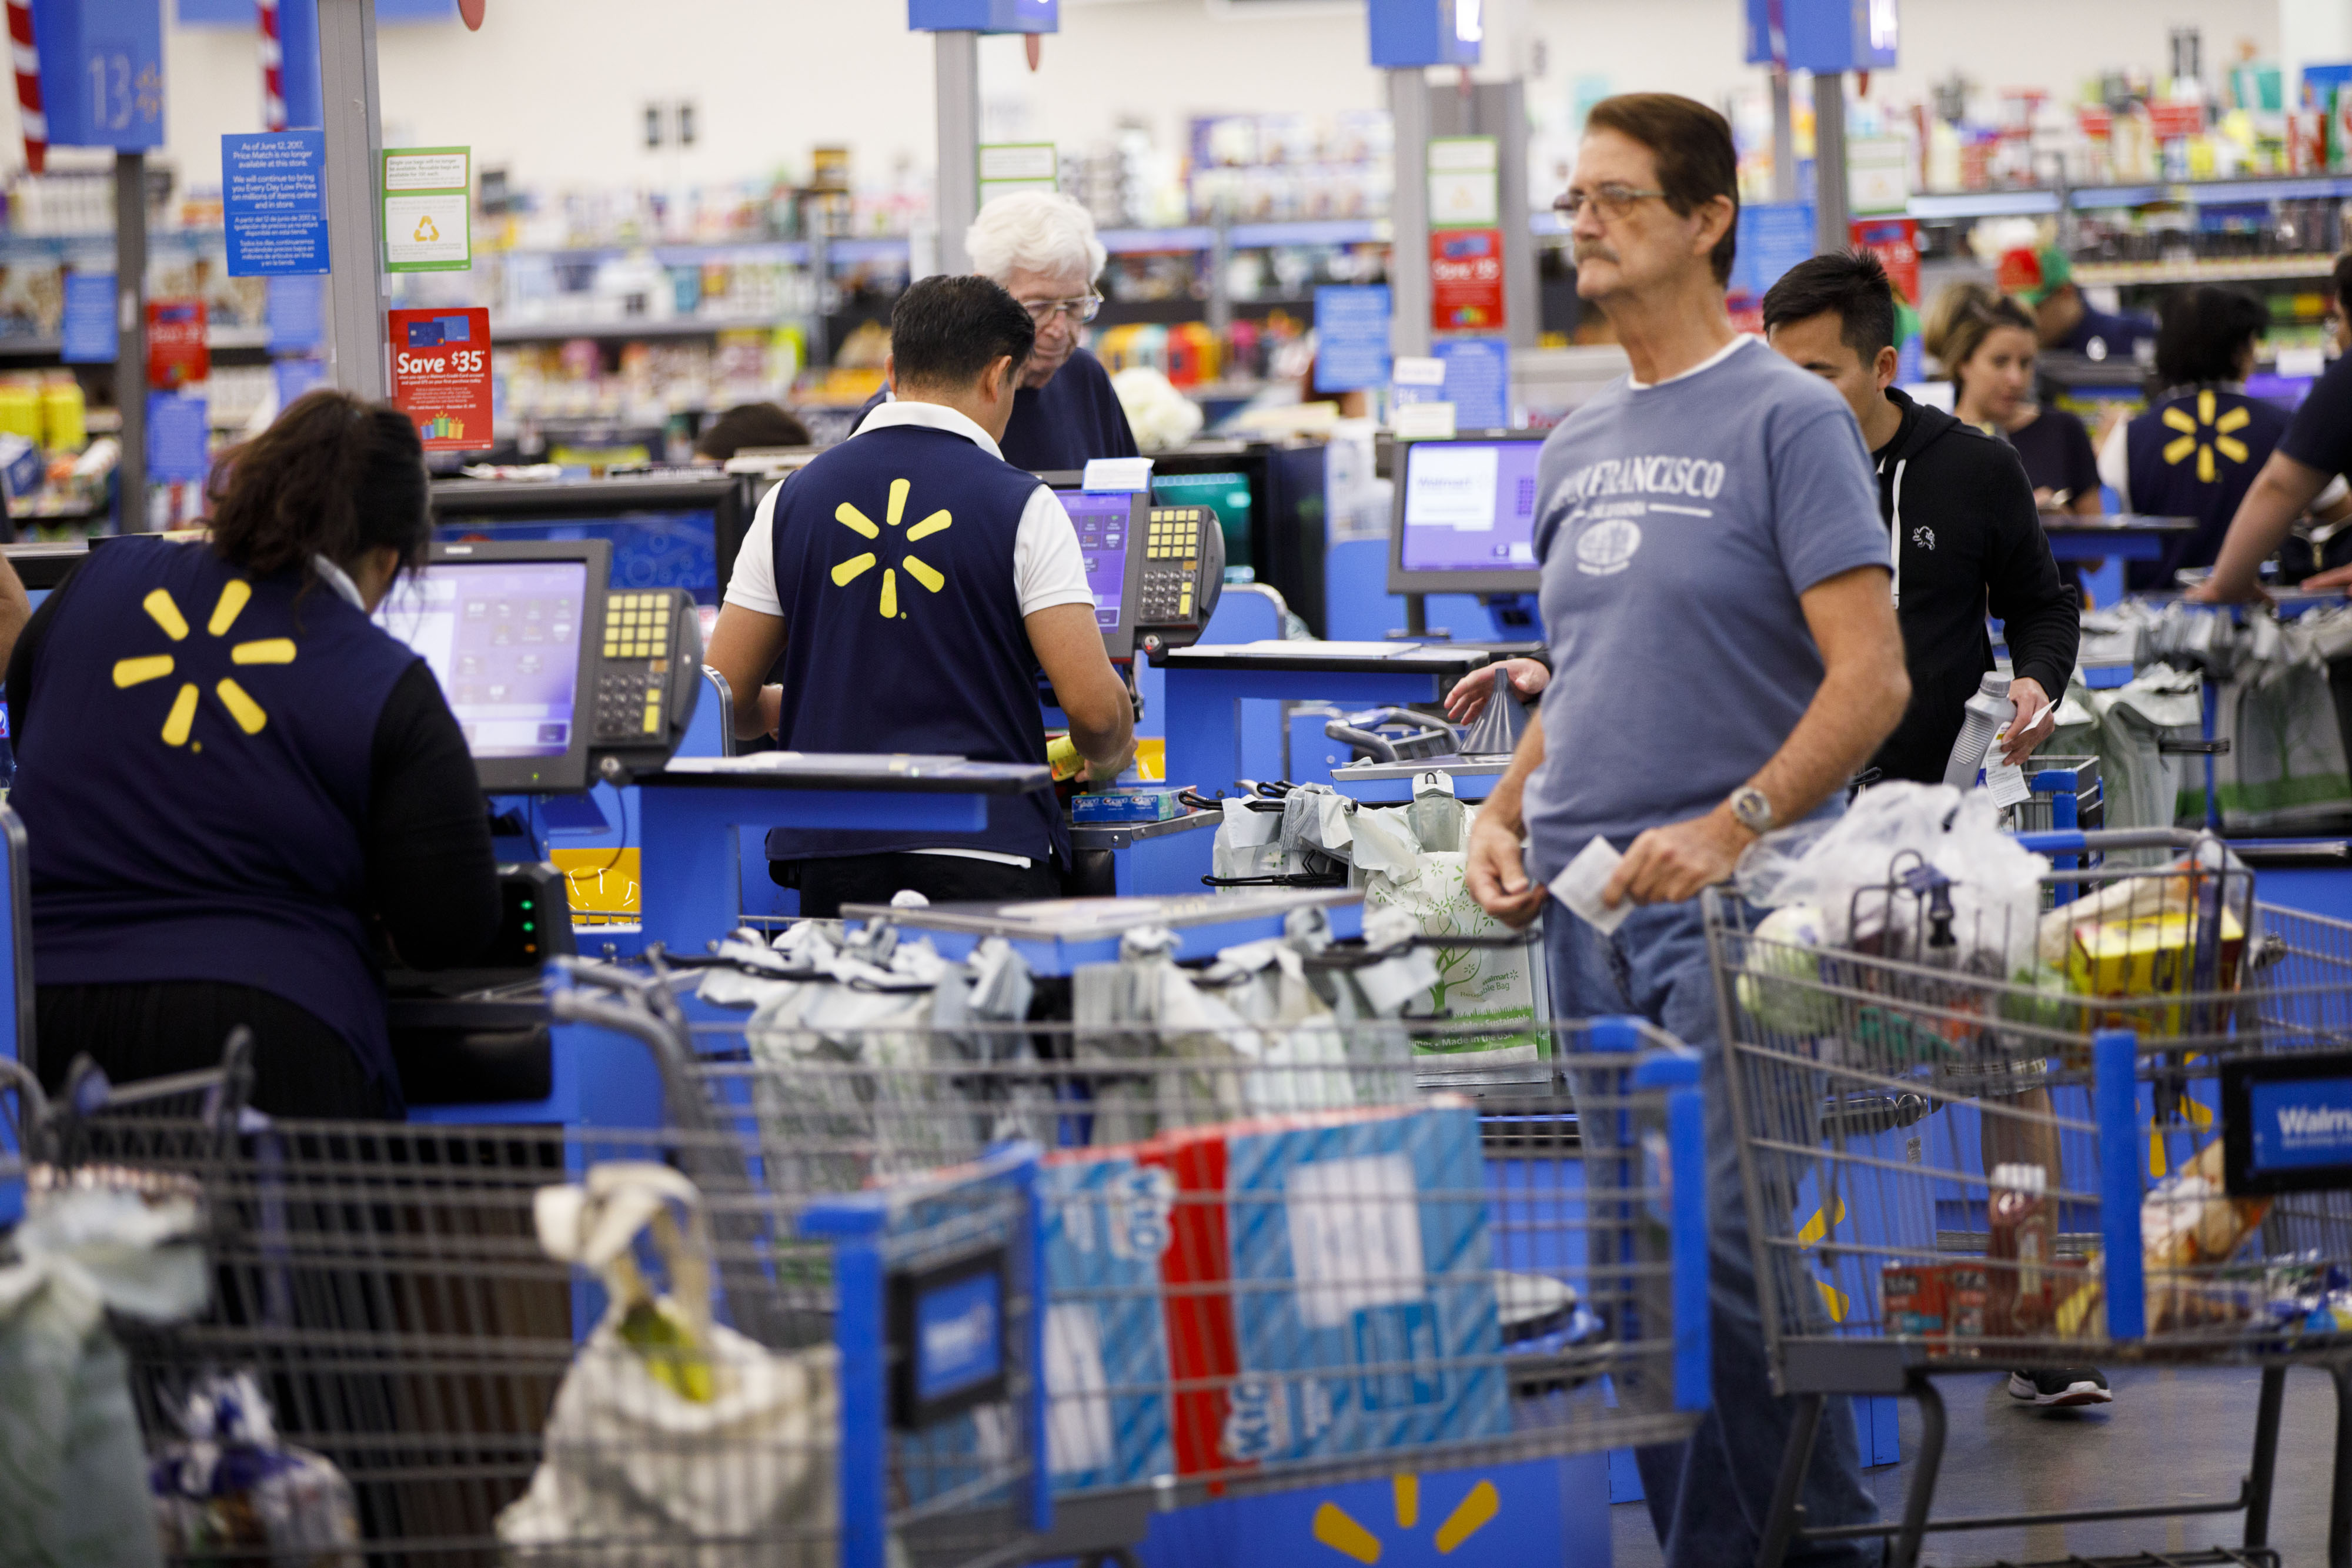 Inside A Wal-Mart Stores Inc. Location Ahead Of Black Friday